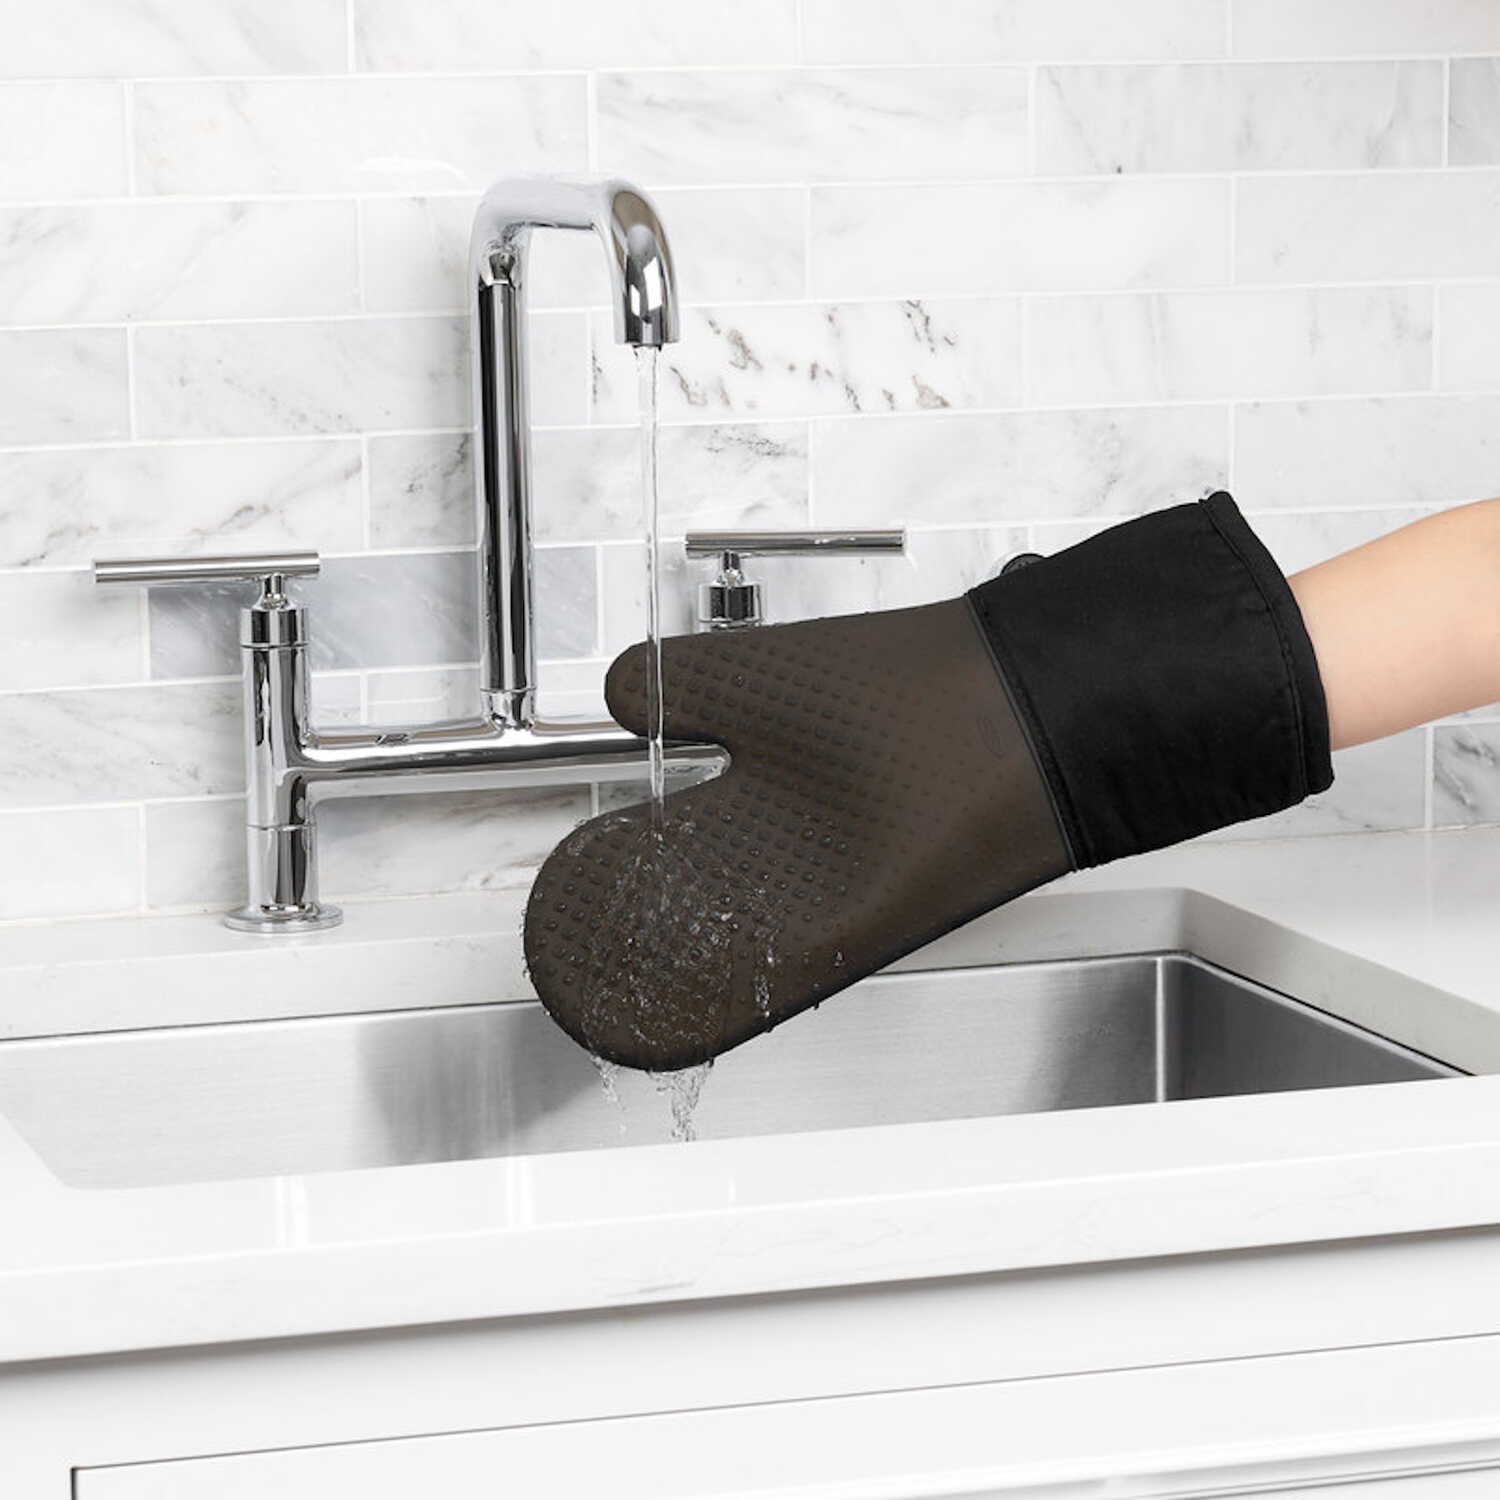 OXO  Good Grips  Black  Cotton/Silicone  Oven Mitt  1 pk